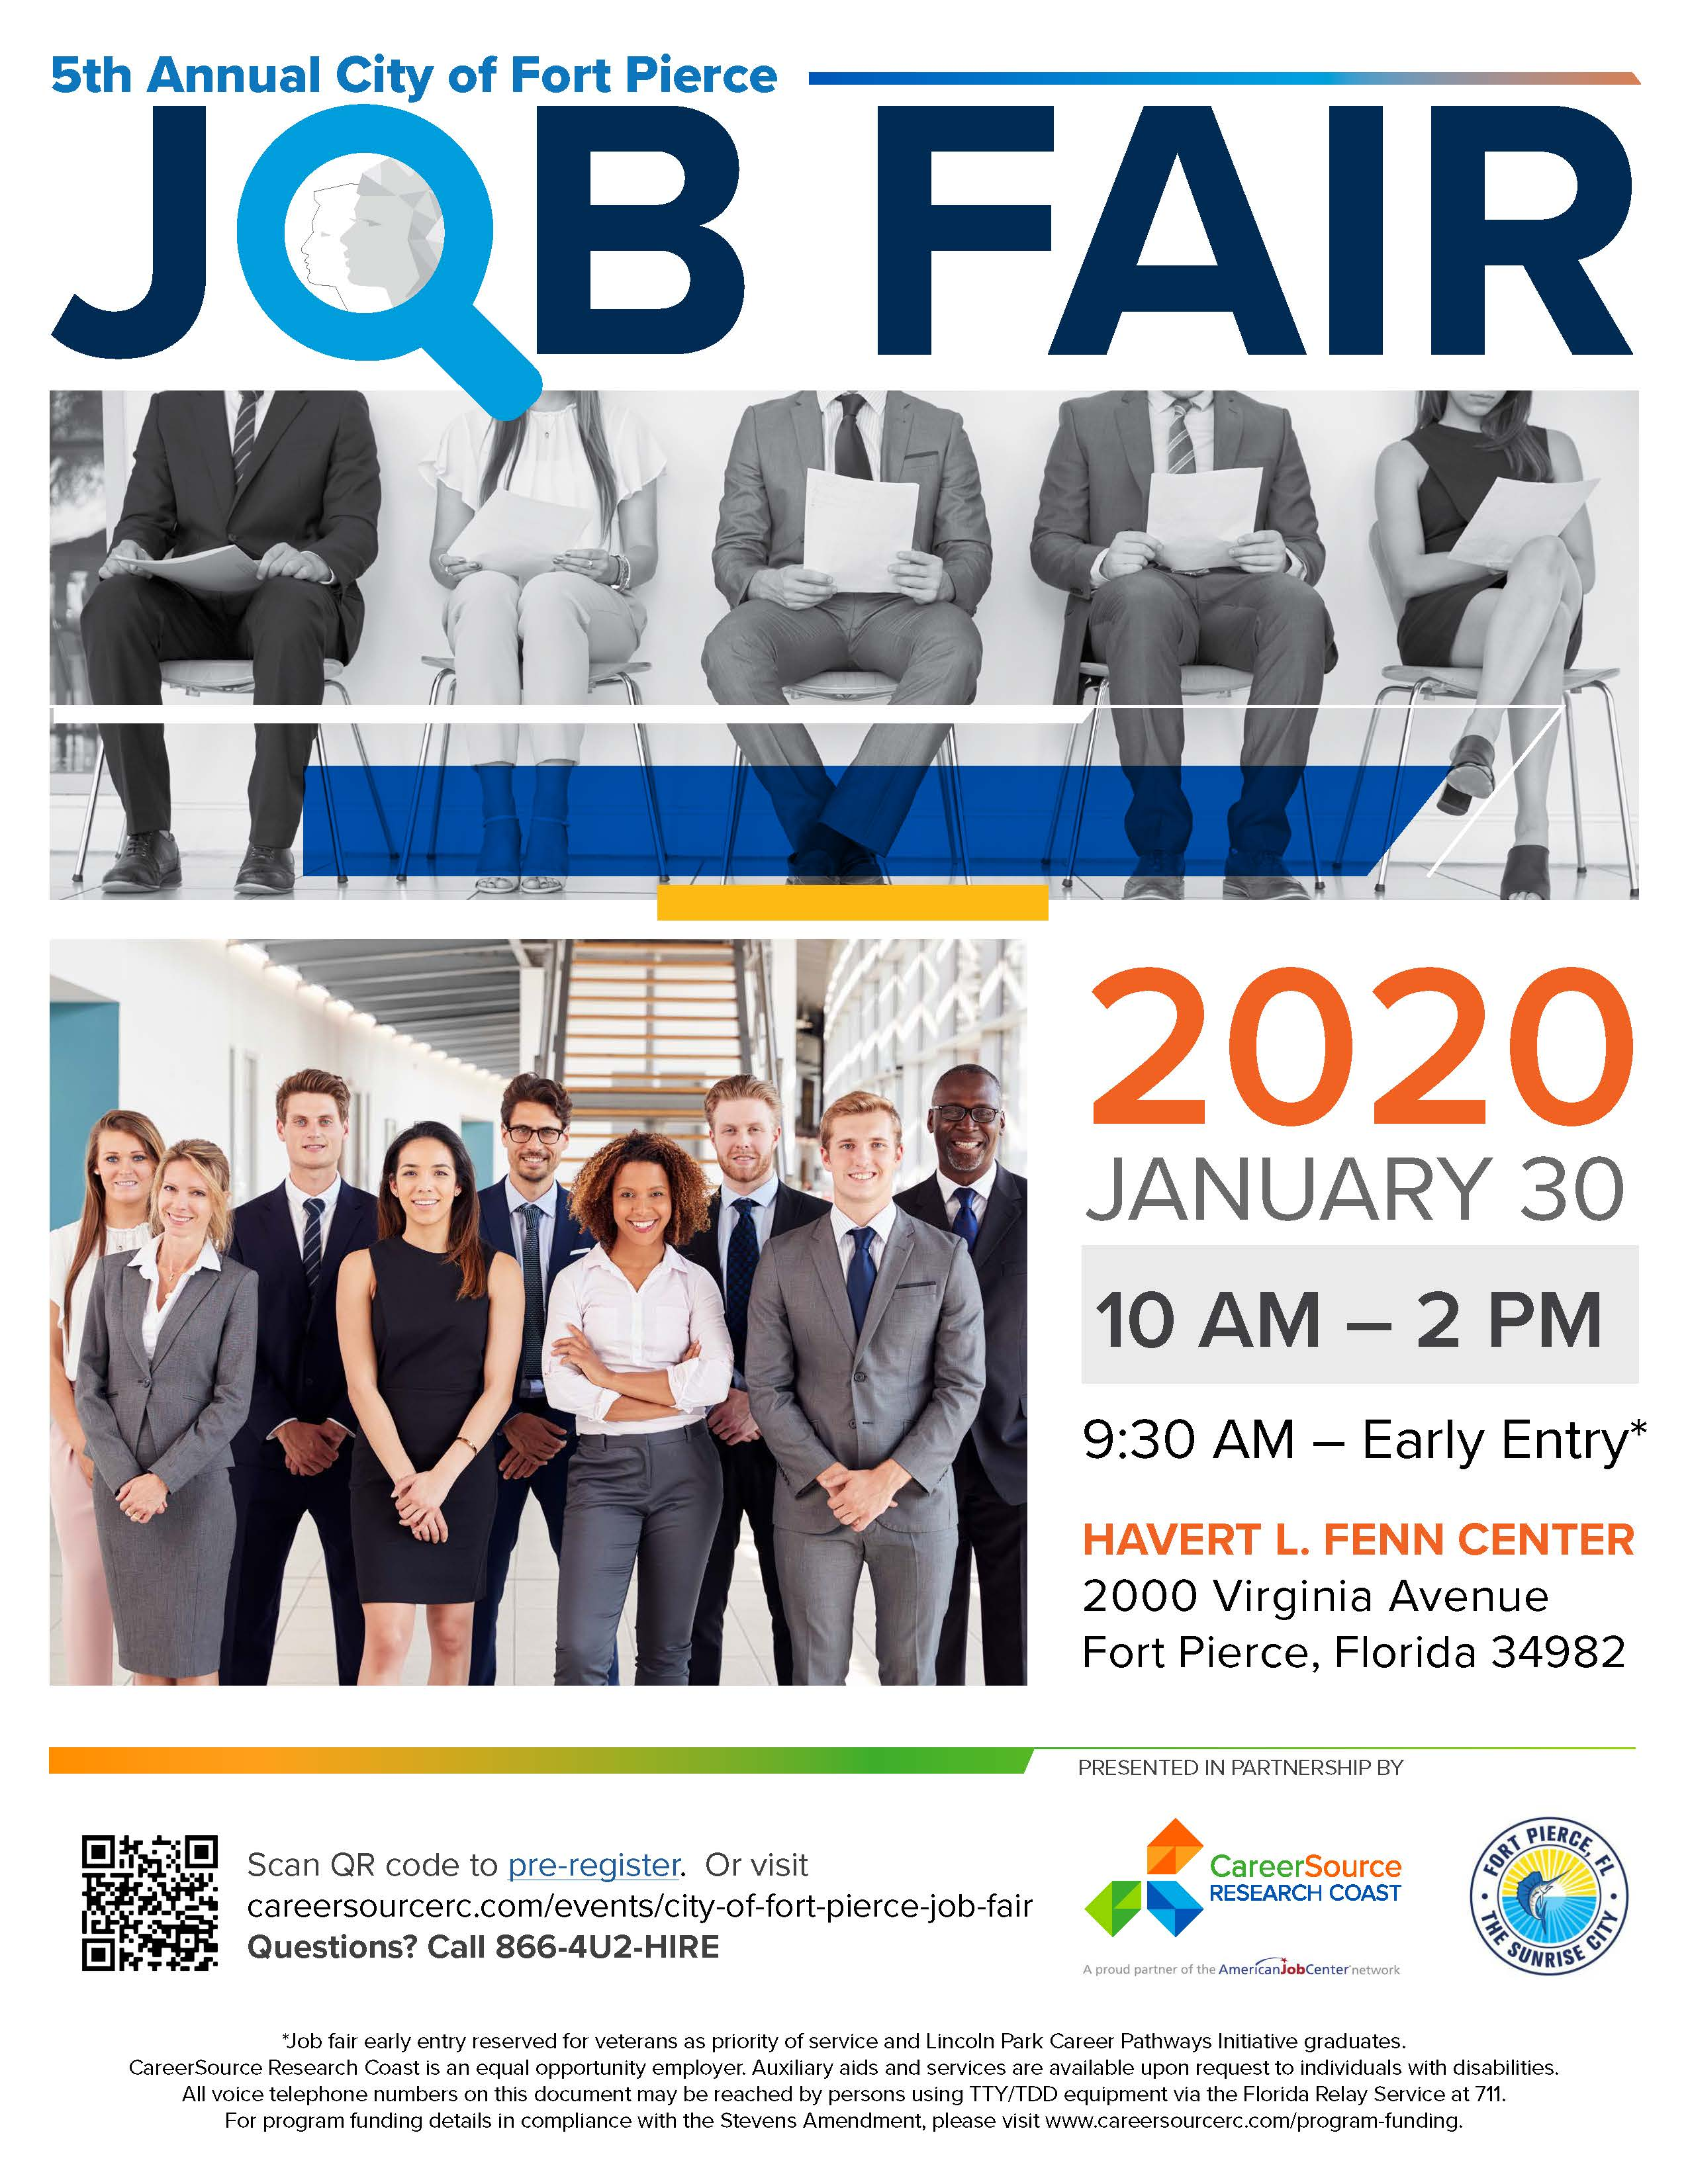 City of Fort Pierce Job Fair Job Seeker Flyer